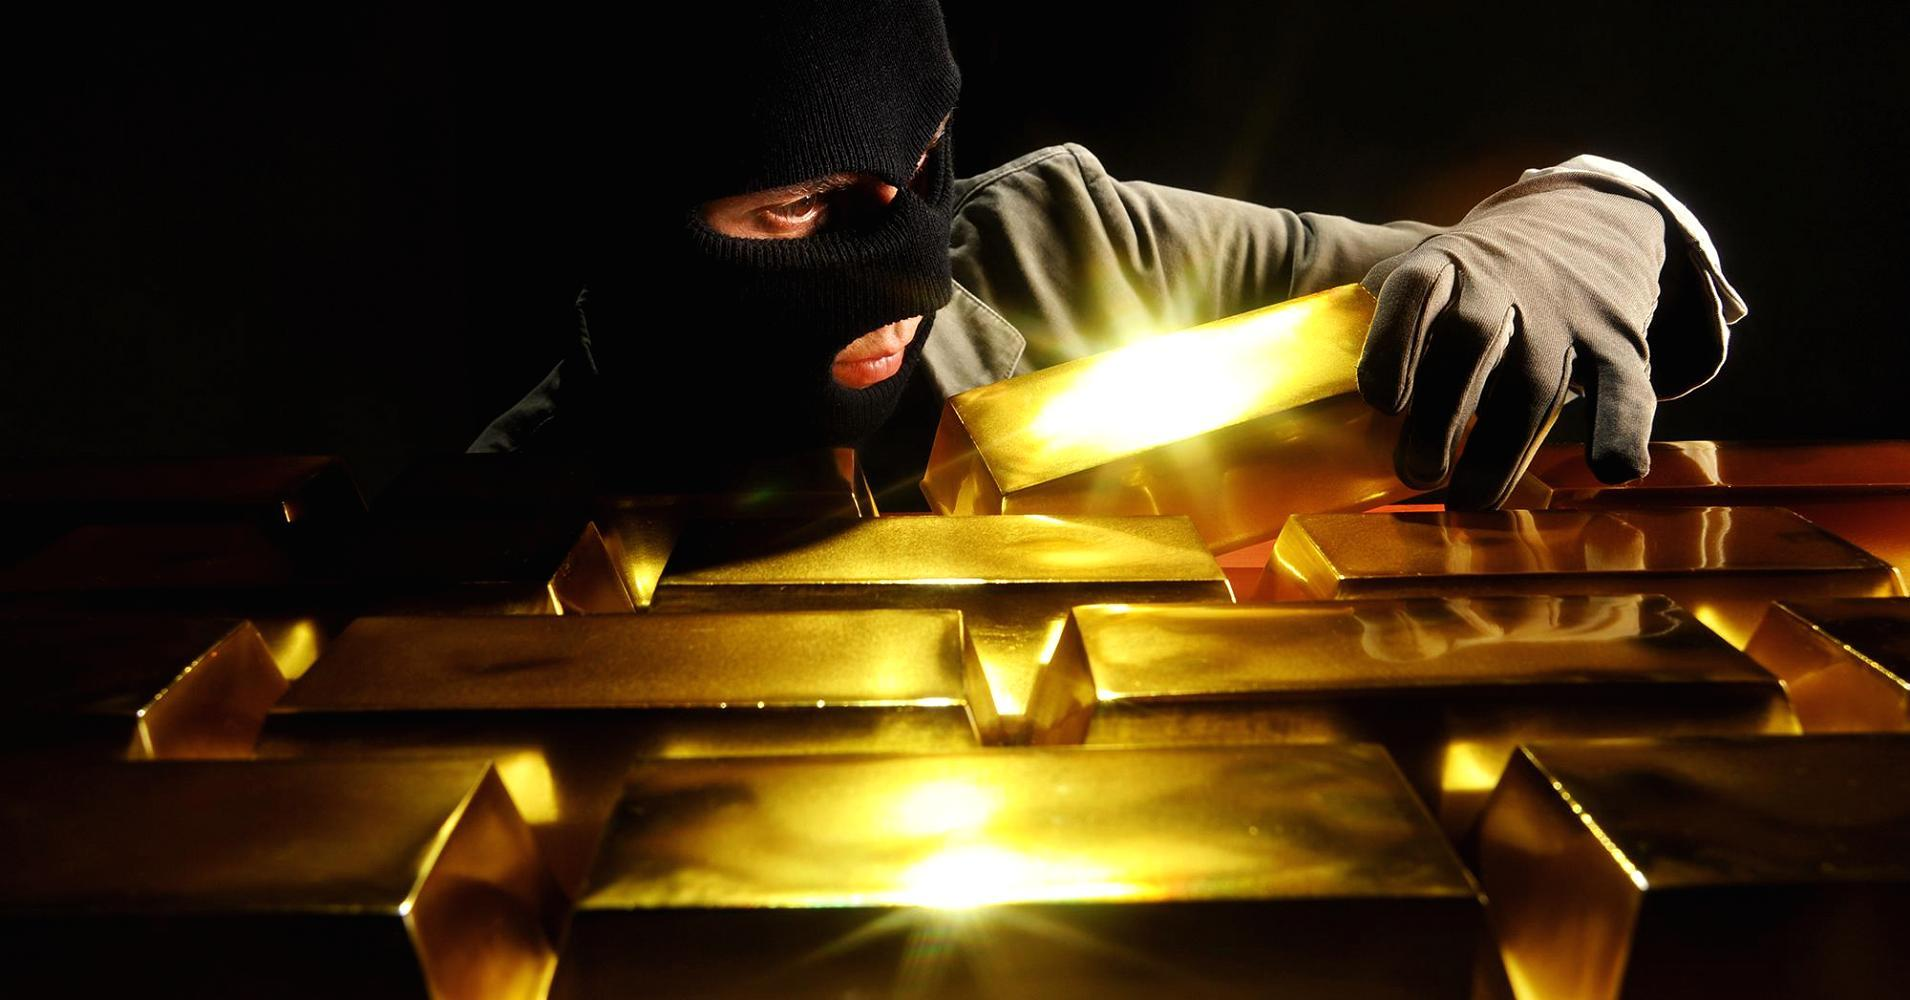 $4M in gold stolen in roadside heist